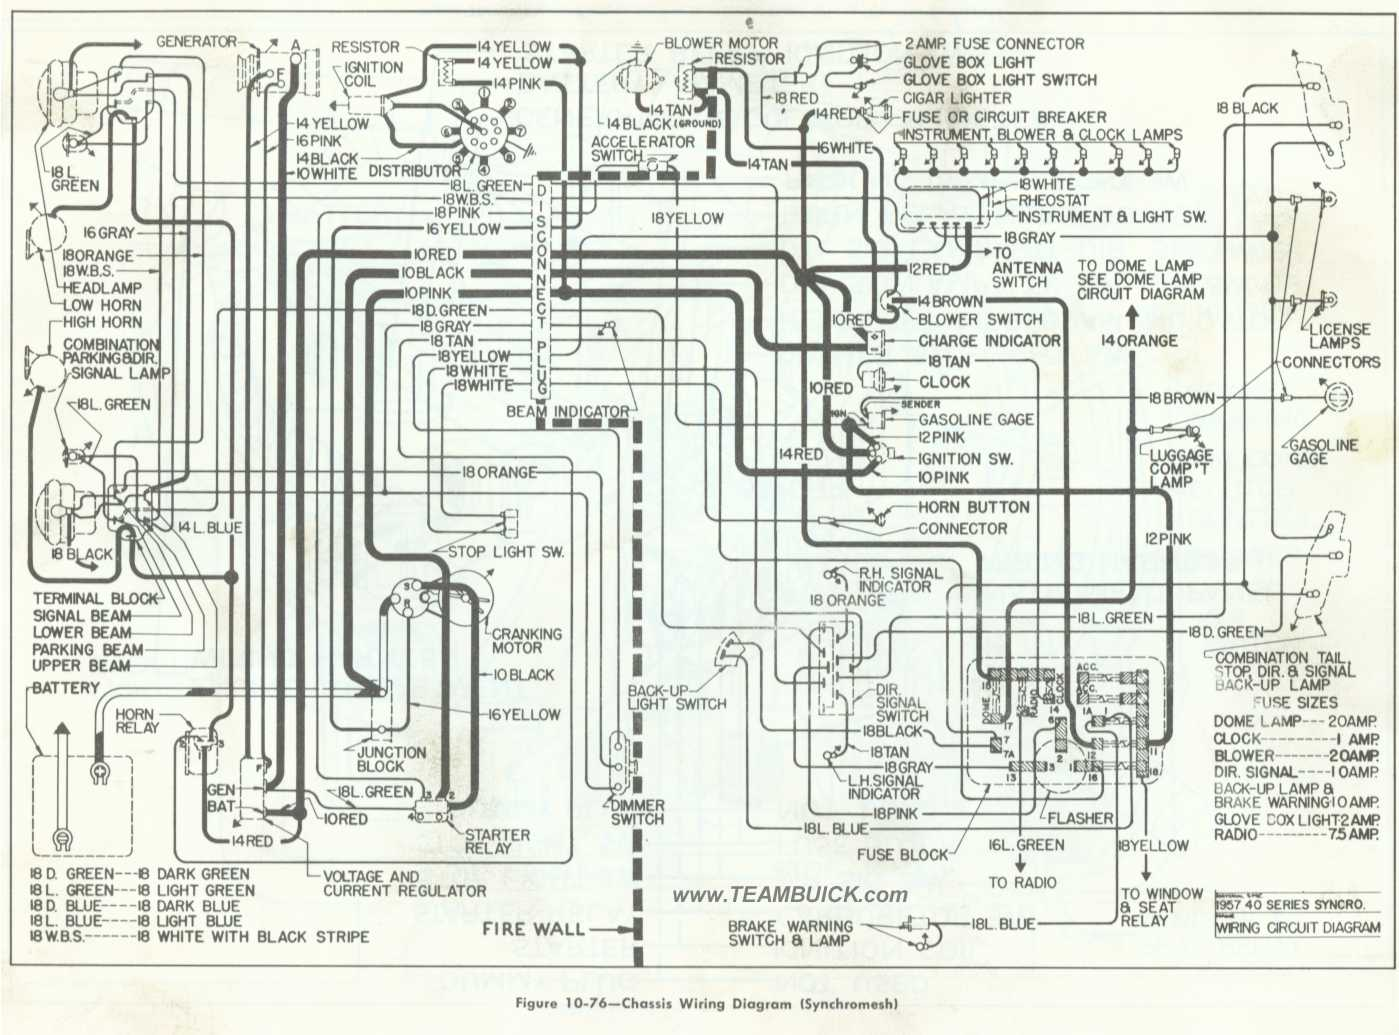 1957 buick chassis wiring diagram synchromesh rh teambuick com workhorse chassis wiring diagram freightliner chassis wiring diagram